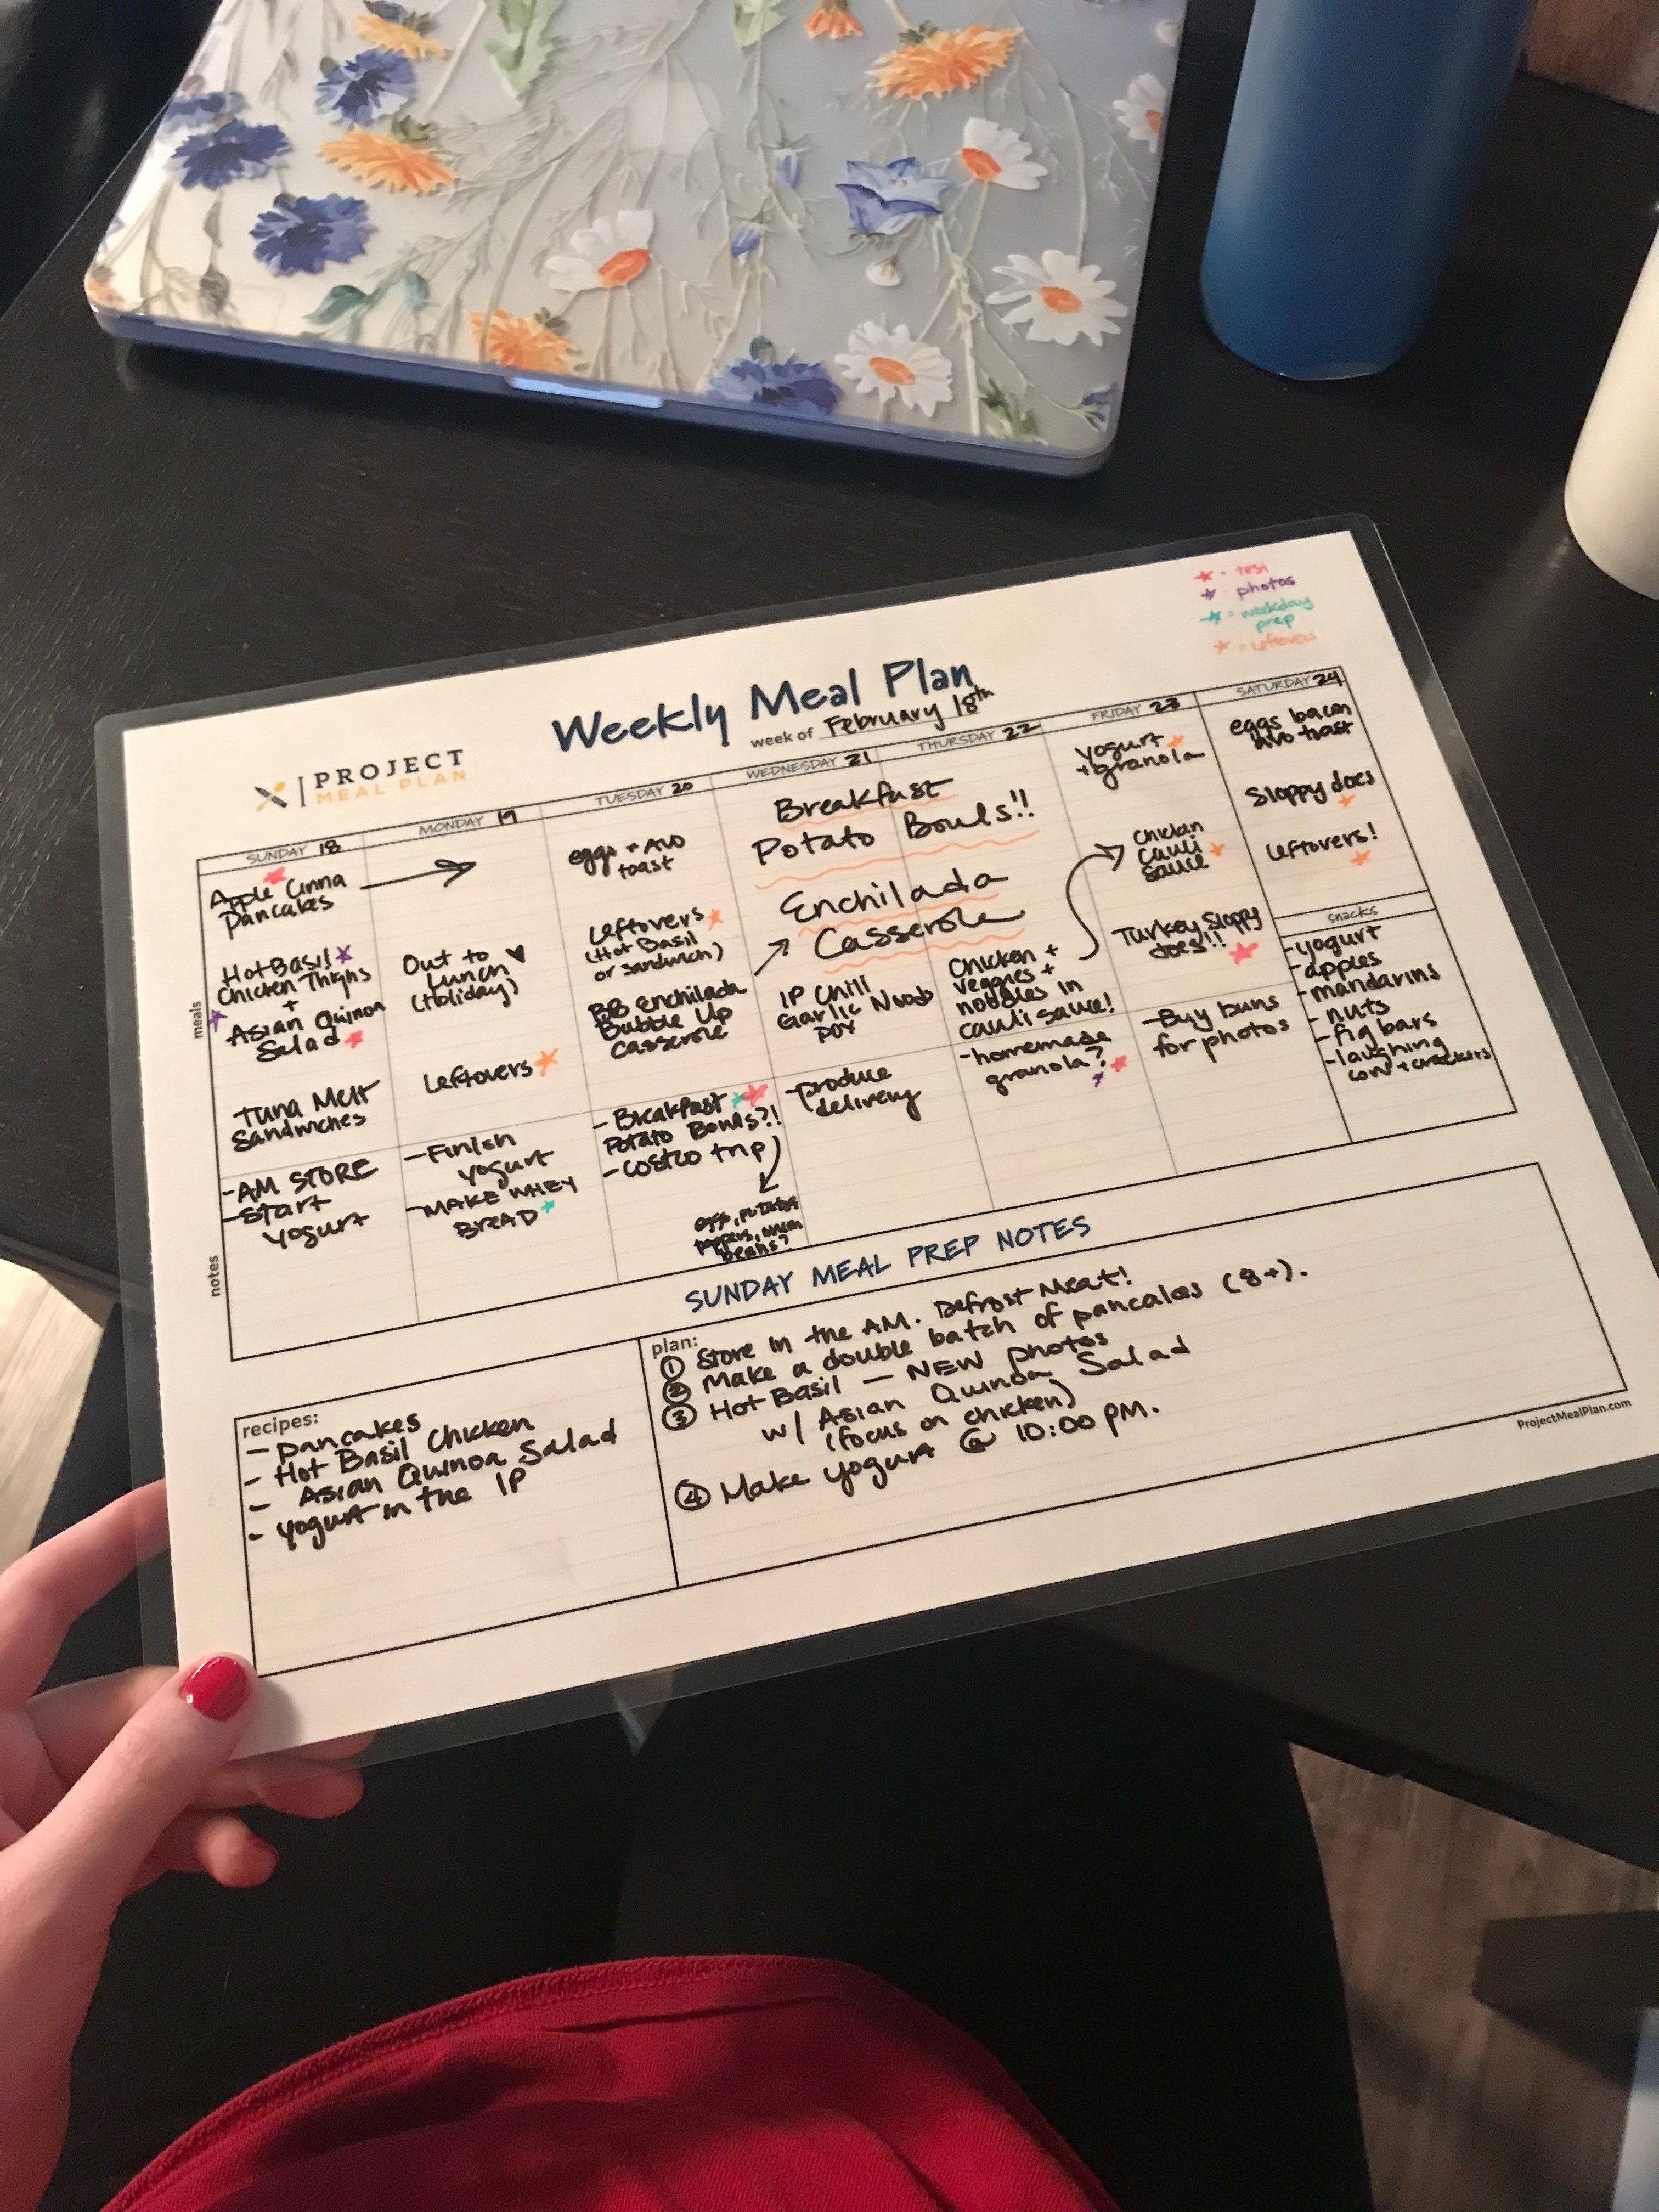 A laminated chart with a handwritten meal plan showing breakfast lunch and dinner for the week of February 18th.